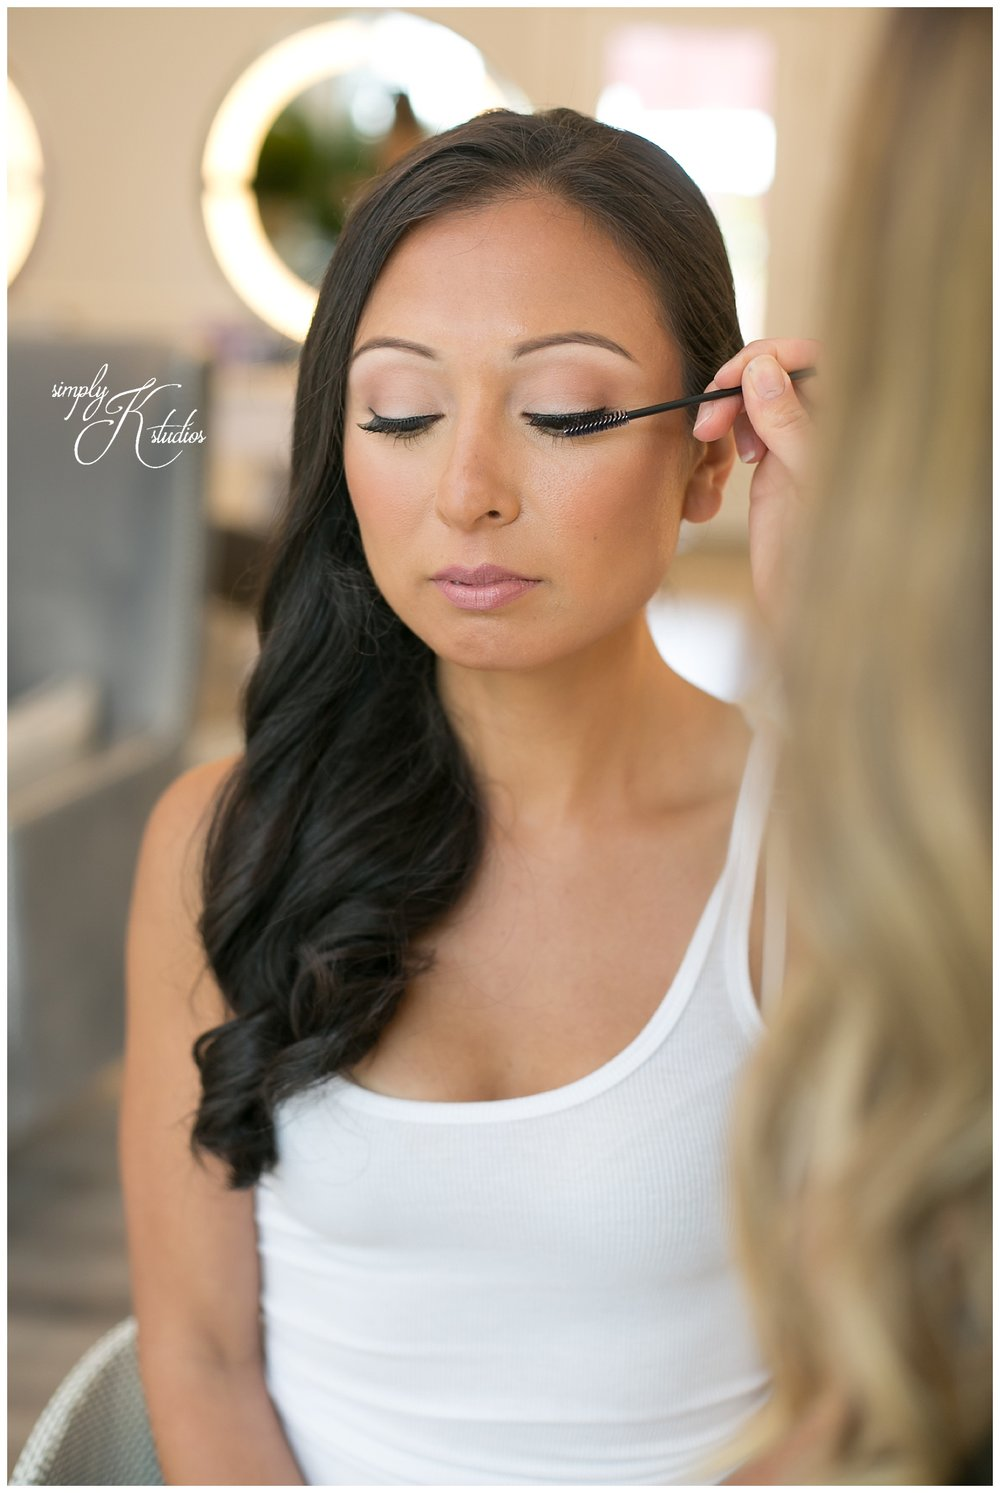 Larissa Lake Makeup Artist.jpg